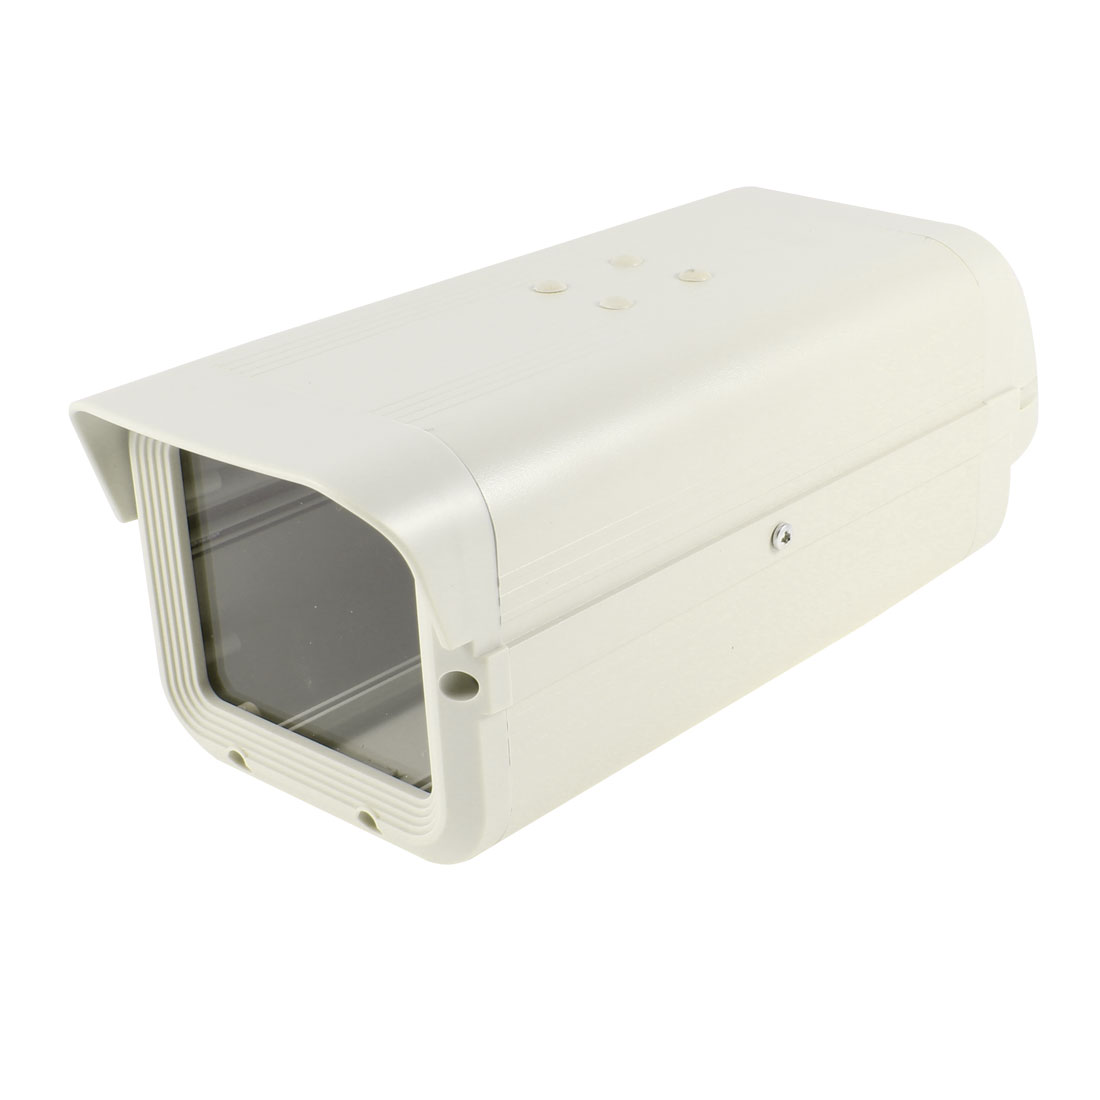 "CCTV Camera Aluminium Alloy Protective Housing Case 10"" x 4"" x 3.5"""